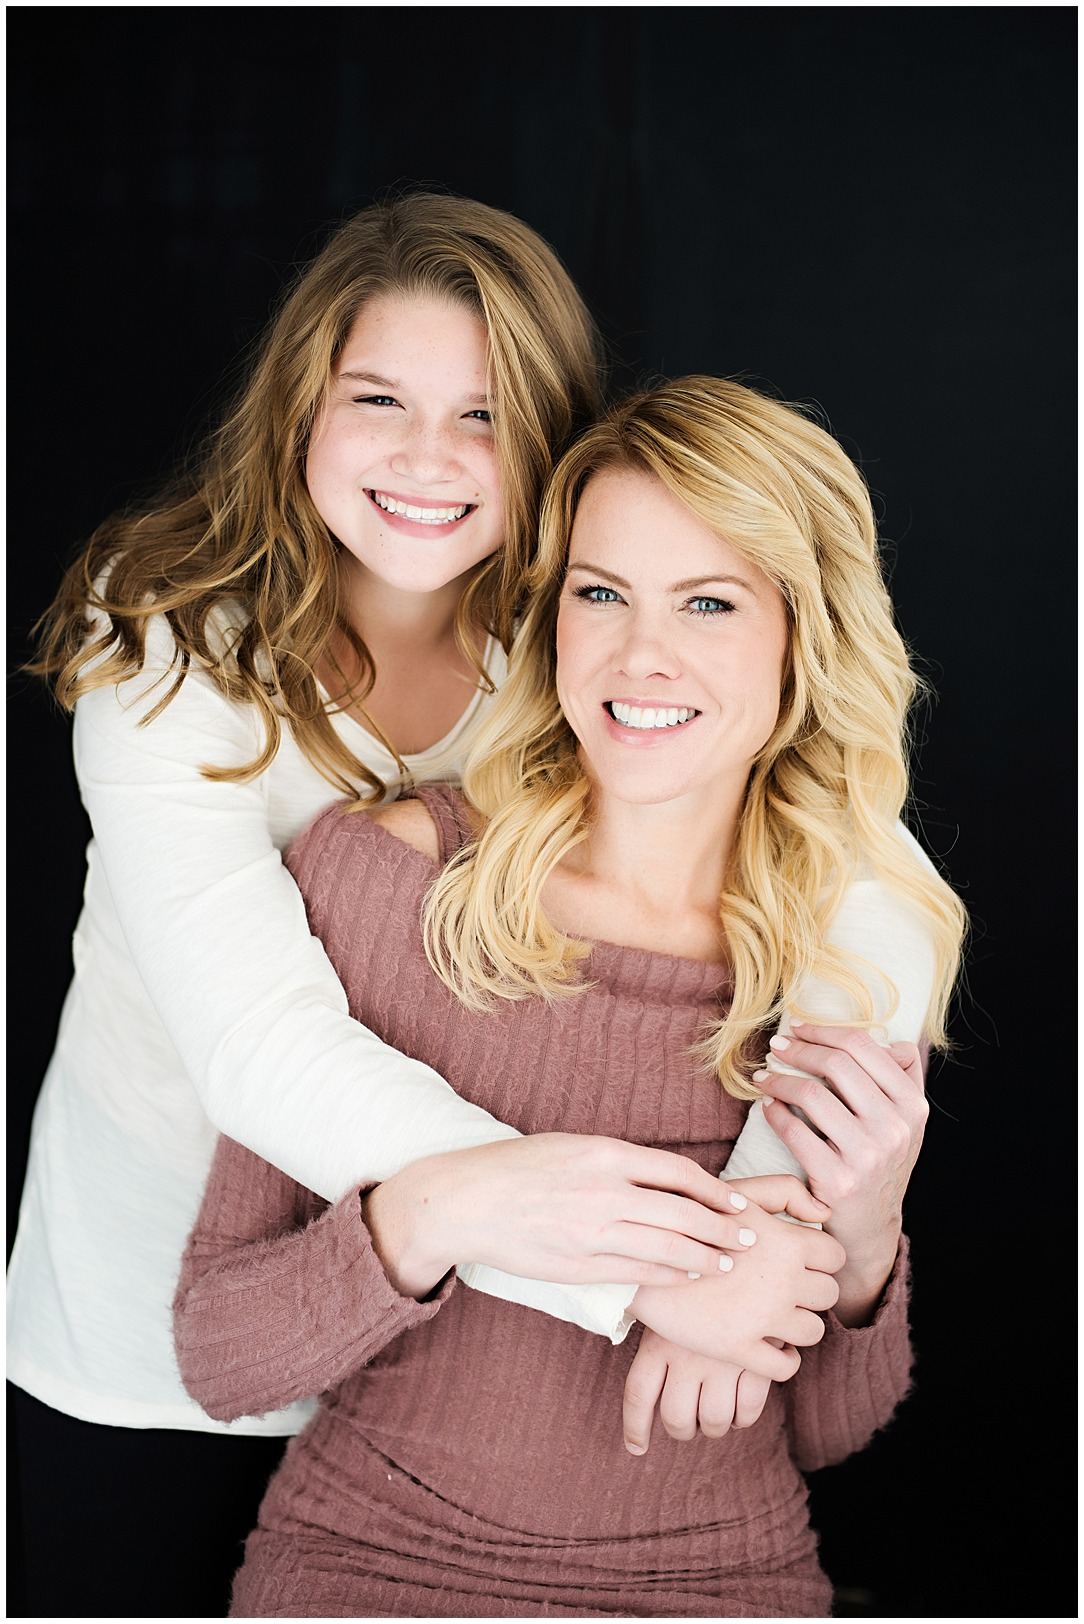 Tessa_marie_photography_family_portrait_photographer_mother_daughter_family_sessions_timeless_elegance_Vogue_magazine_style_portraits_contemporary_portraits_0096.jpg